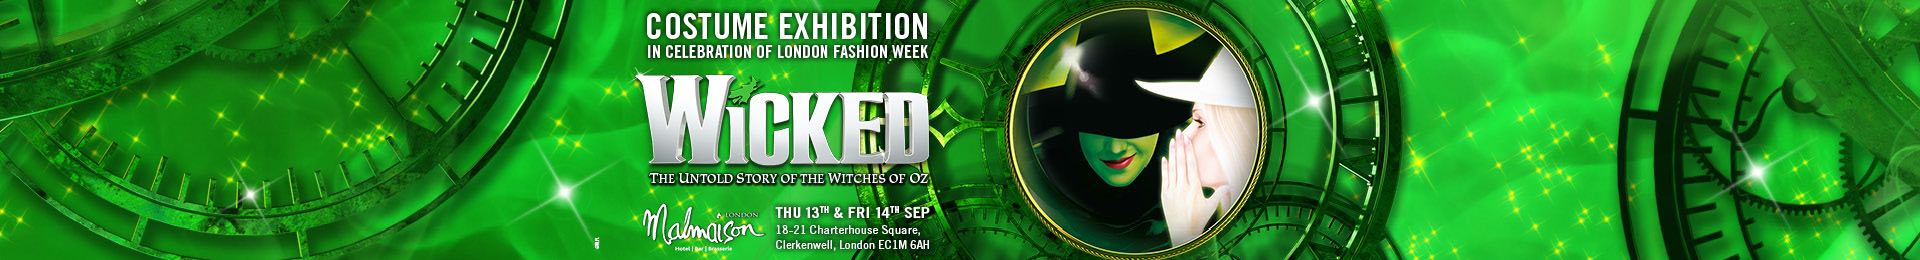 The Most Wicked Fashion Exhibition in London banner image